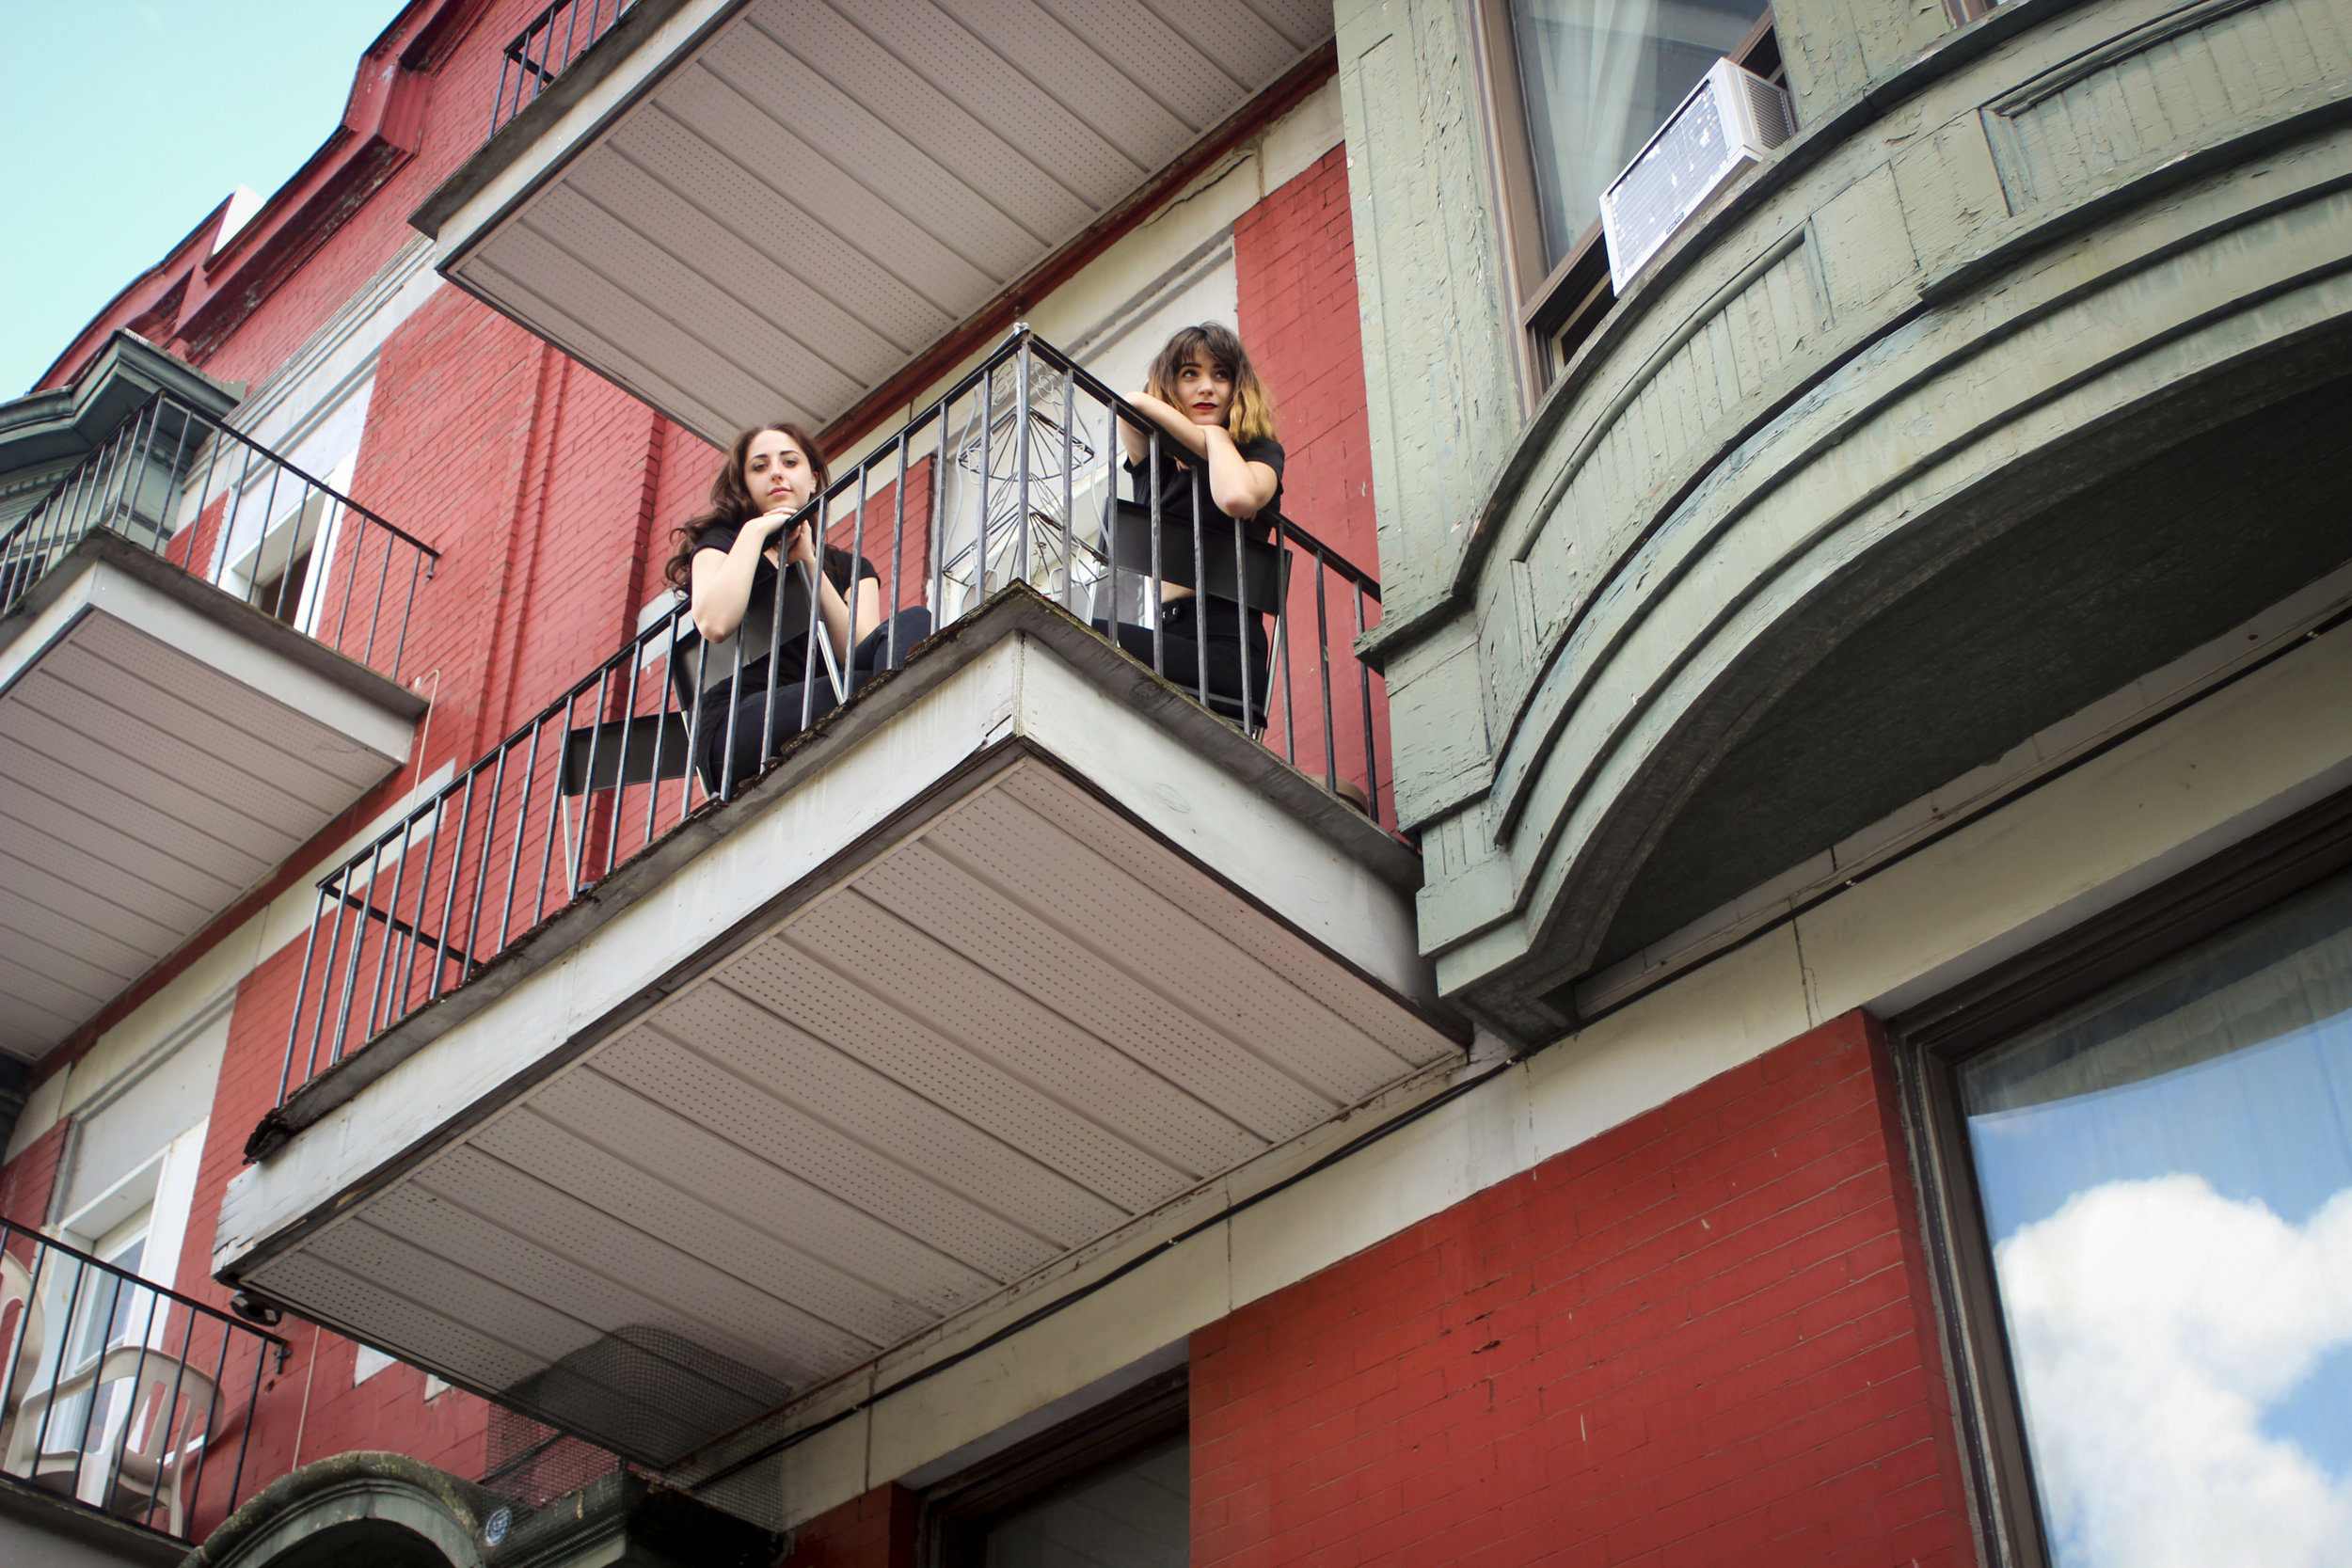 Ali, Tereza, & The Balcony